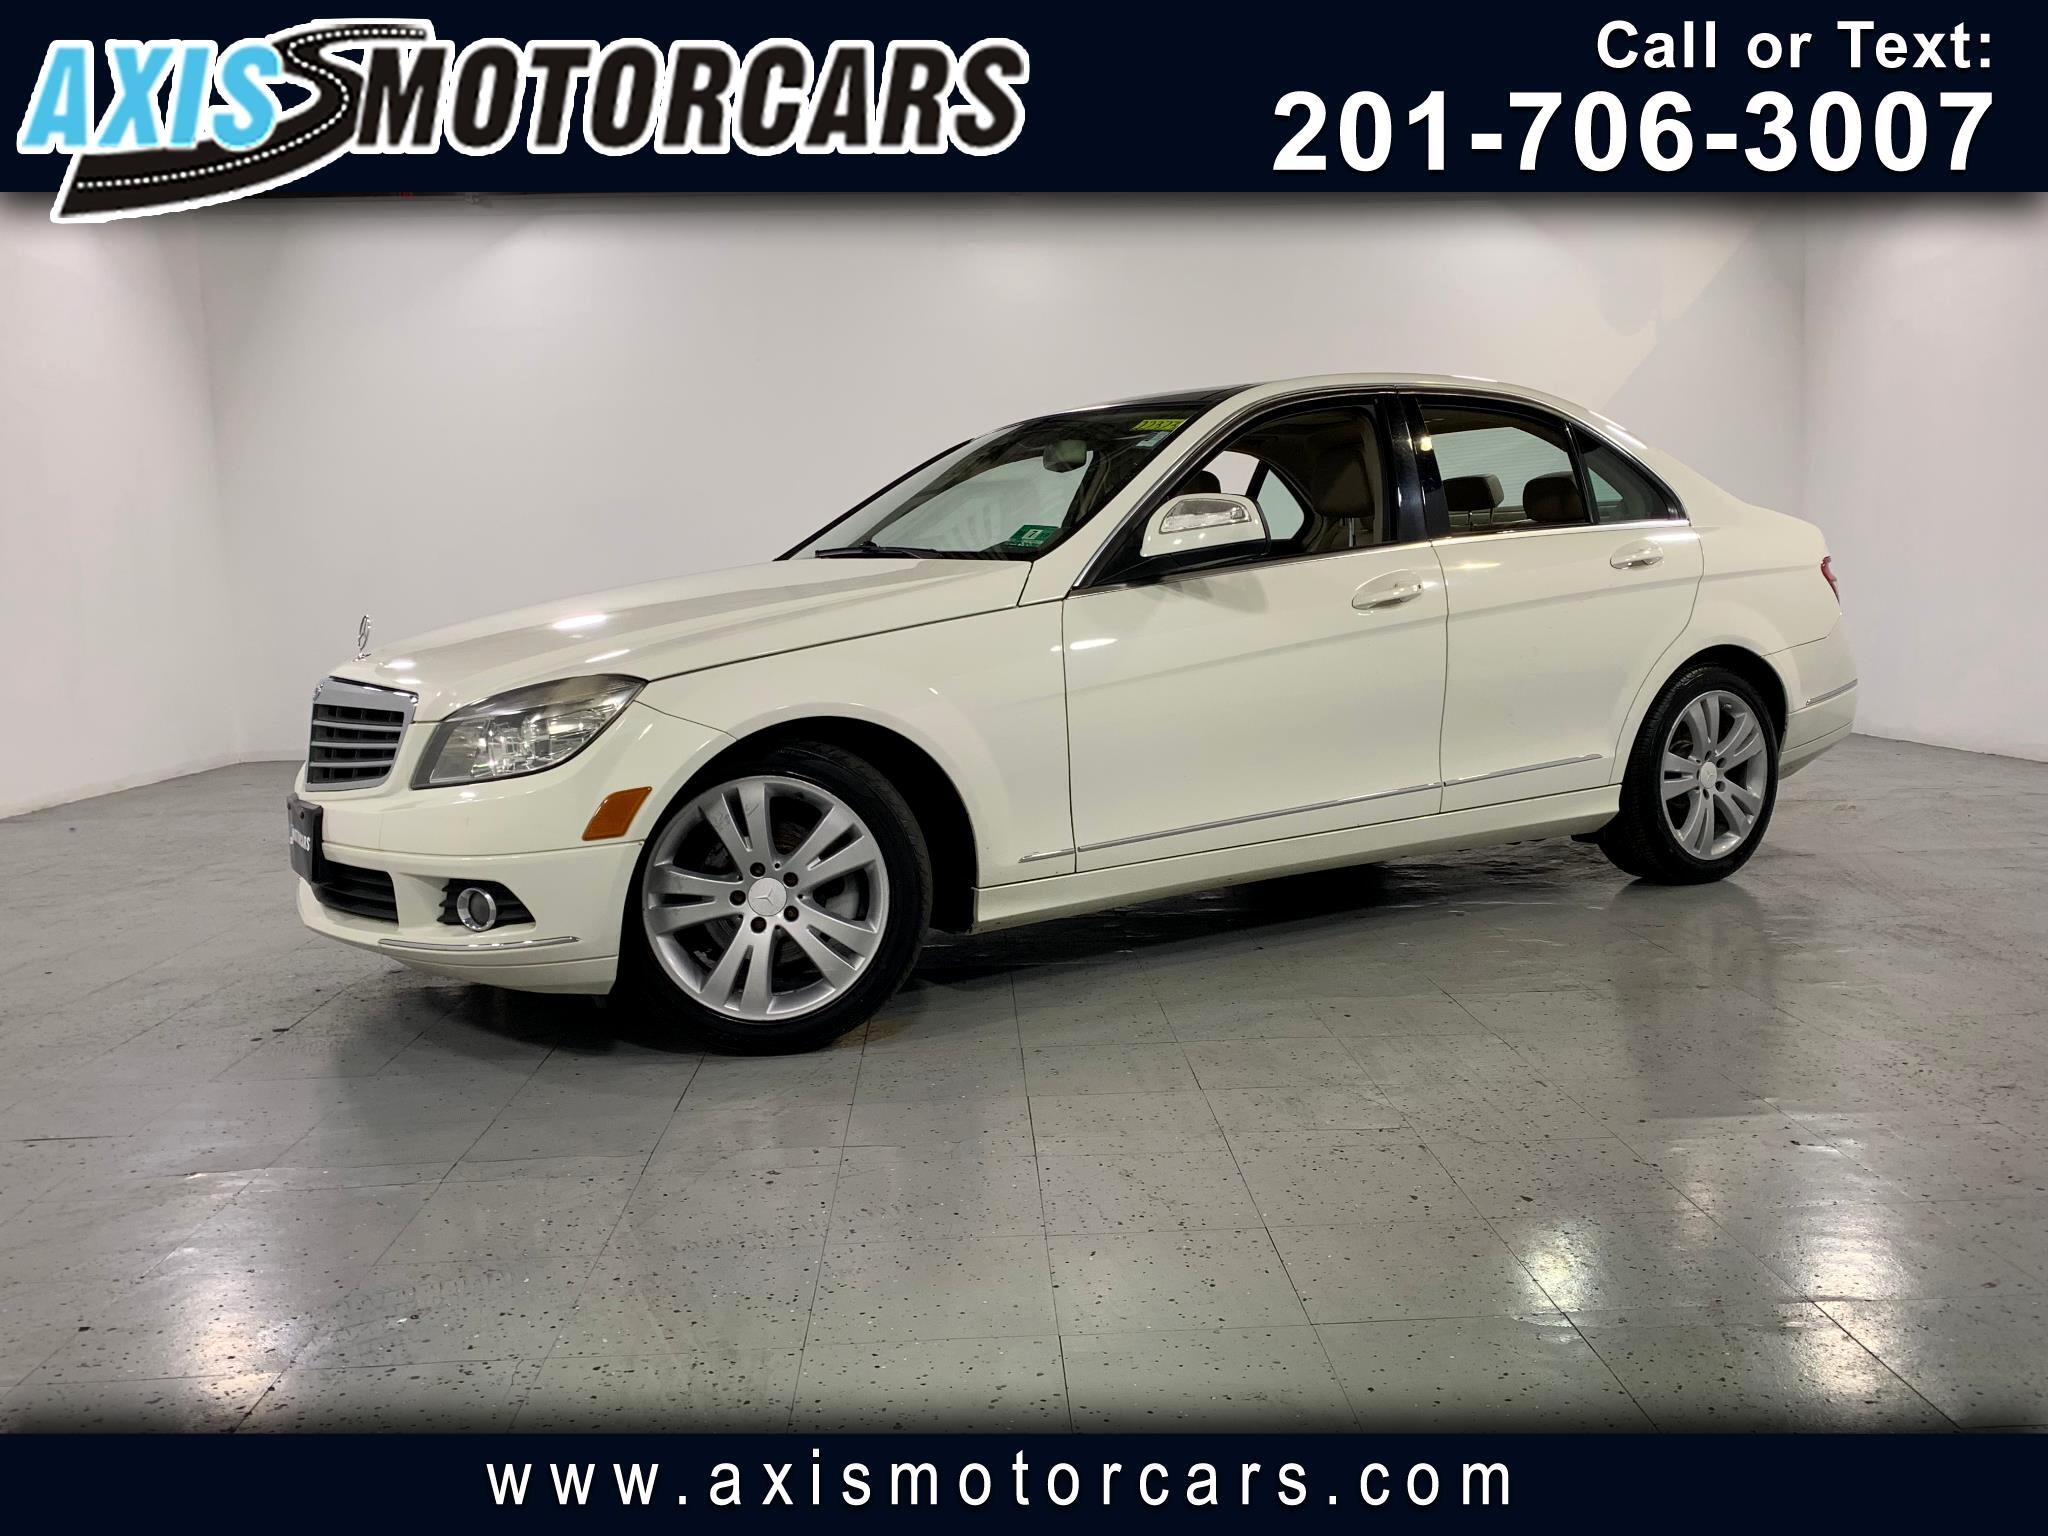 2009 Mercedes-Benz C300 w/Harman Kardon Sound System Sunroof Leather